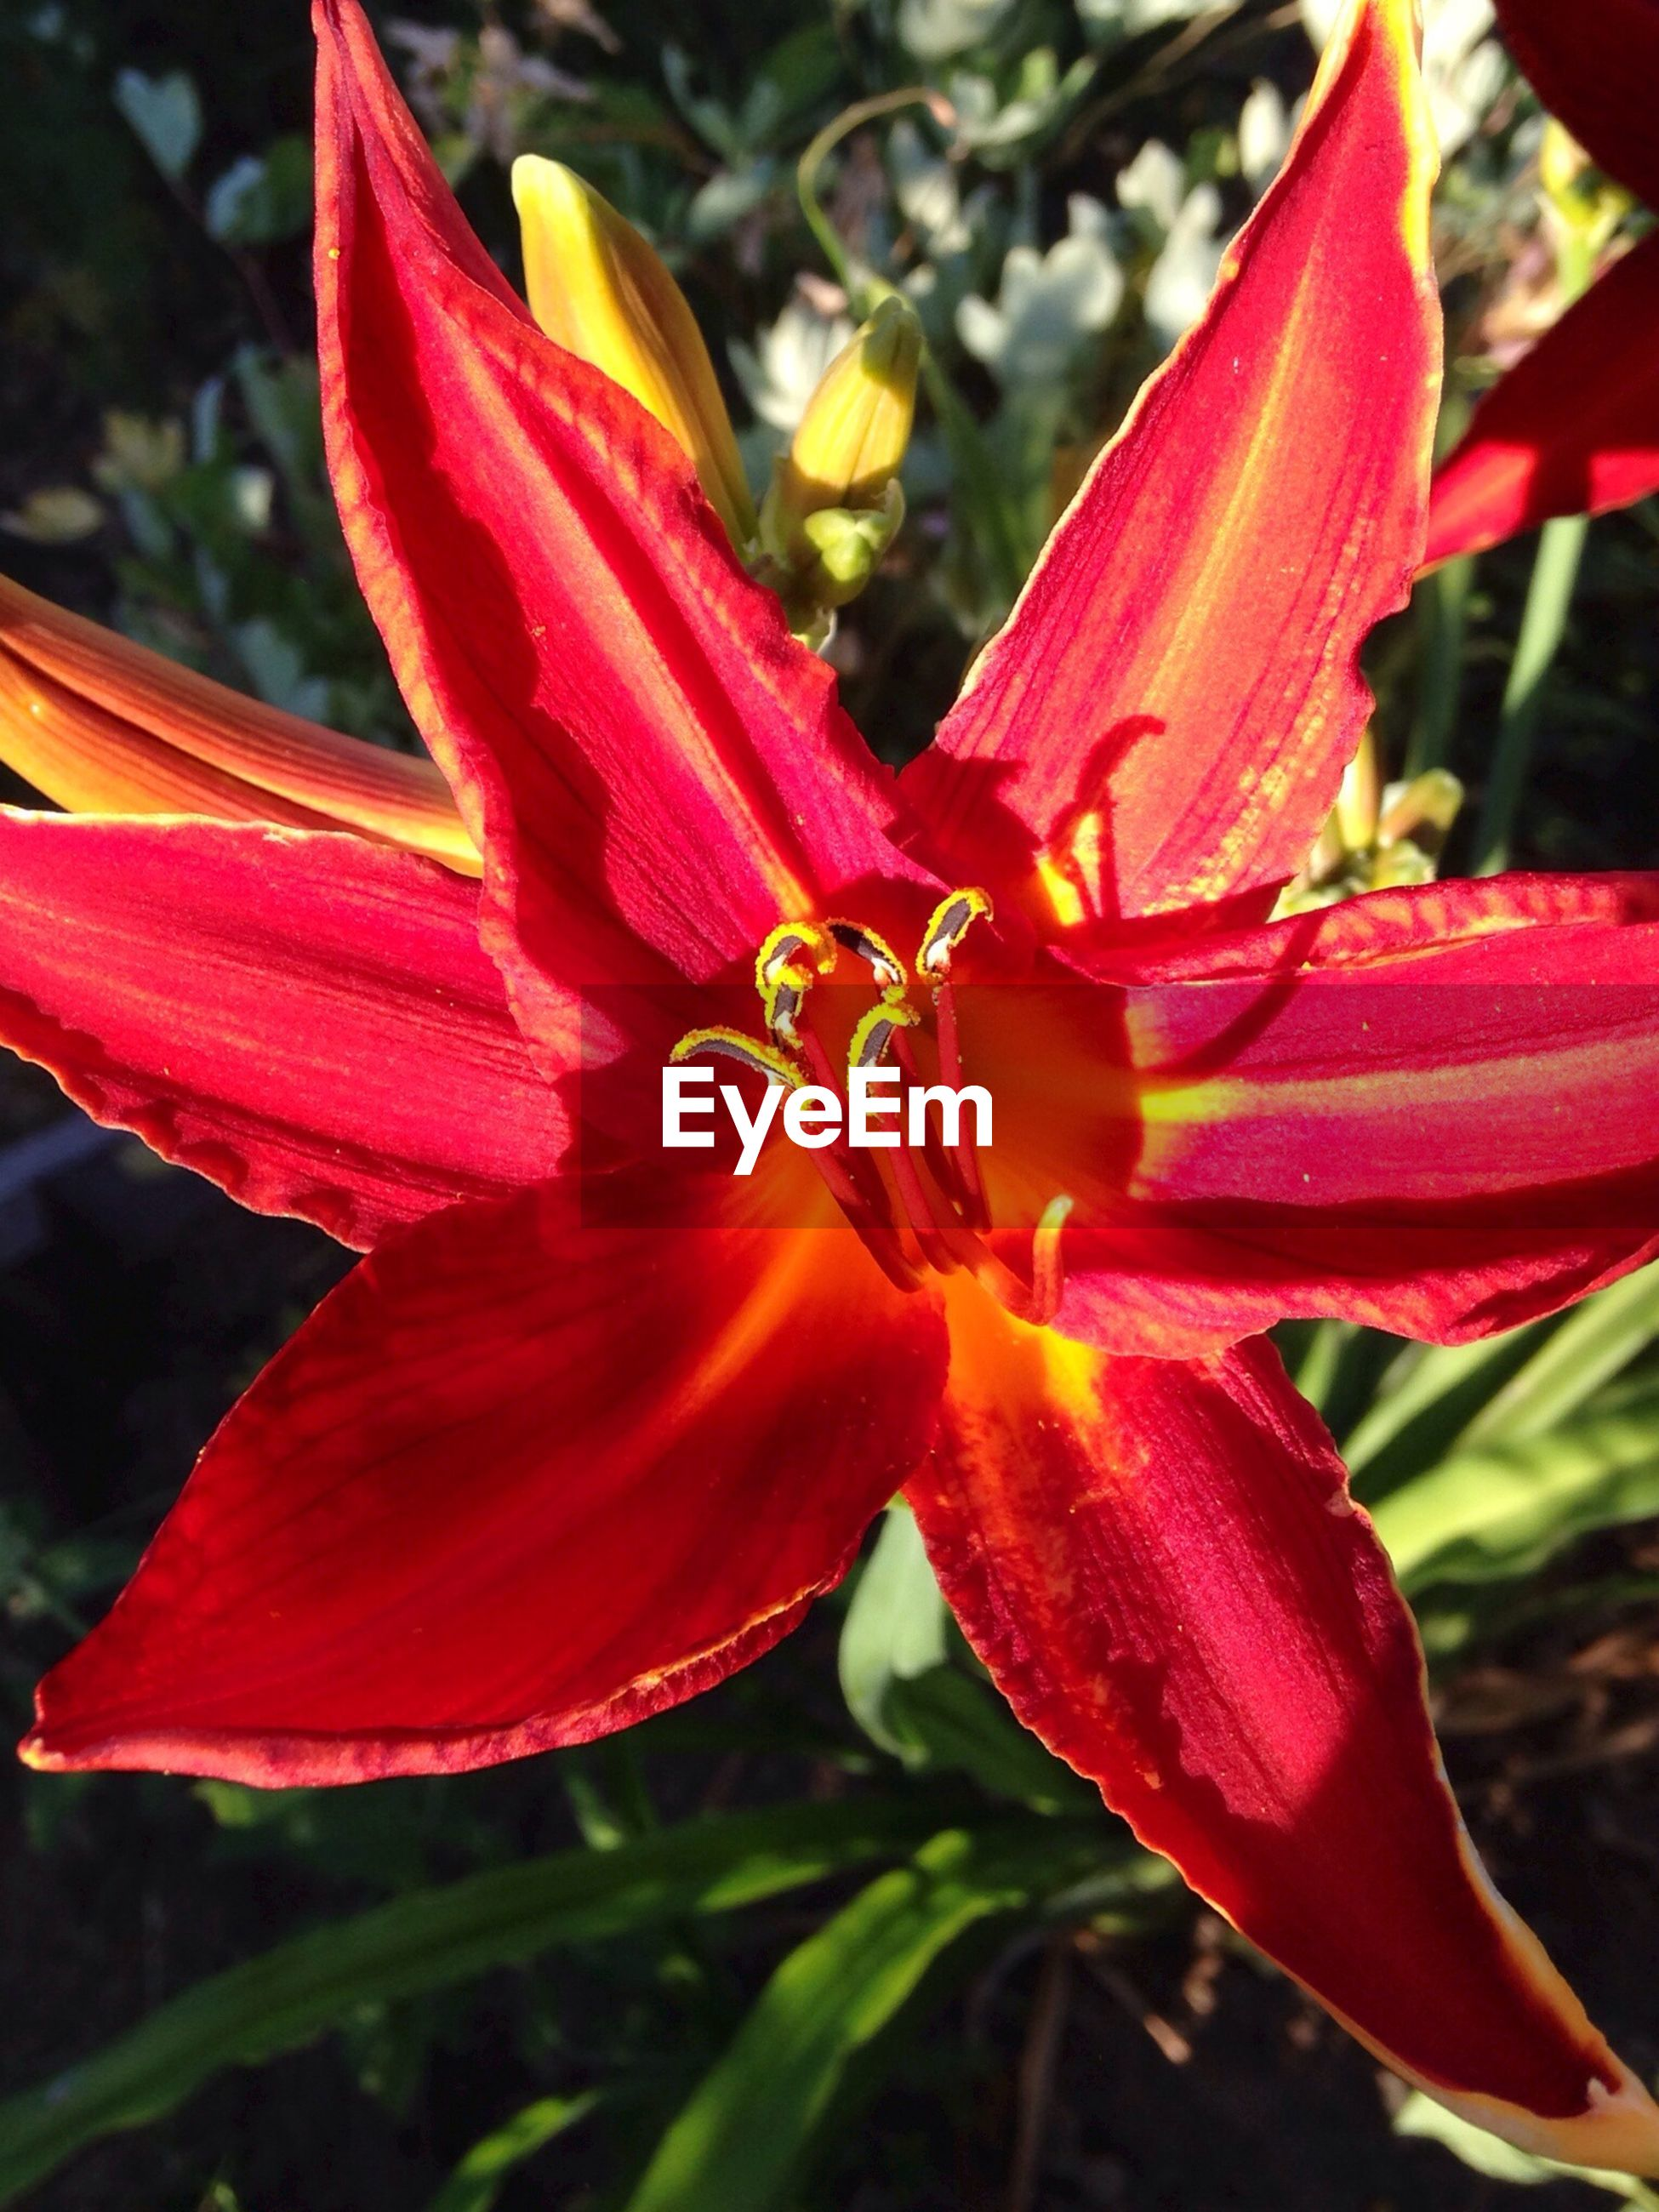 flower, petal, flower head, freshness, fragility, growth, close-up, beauty in nature, blooming, pollen, red, nature, plant, focus on foreground, stamen, single flower, in bloom, park - man made space, day, selective focus